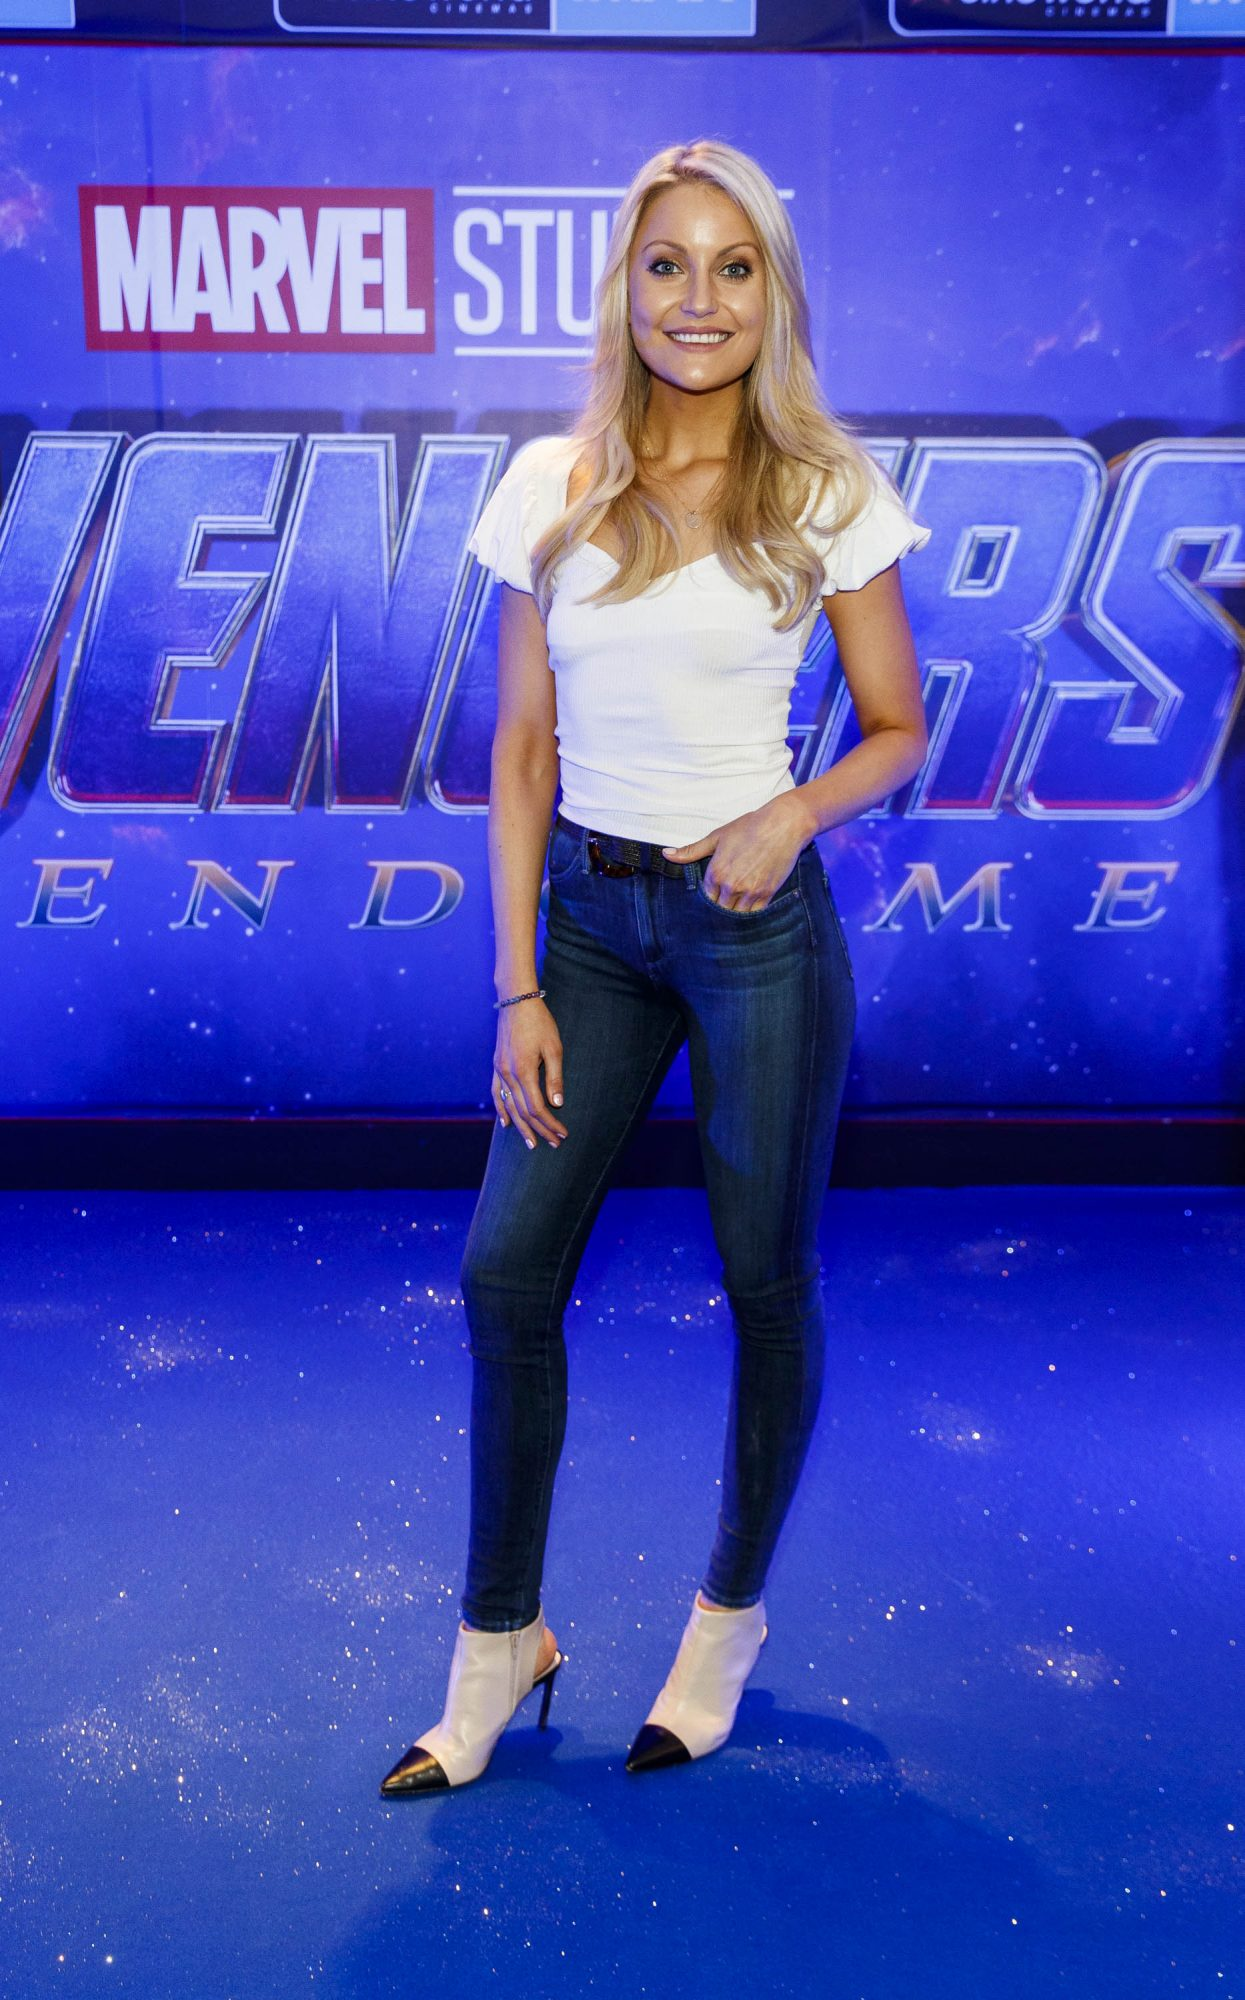 Kerri Nicole Blanc pictured at the special preview screening of Marvel Studios' Avengers: Endgame at Cineworld Dublin. Picture by: Andres Poveda